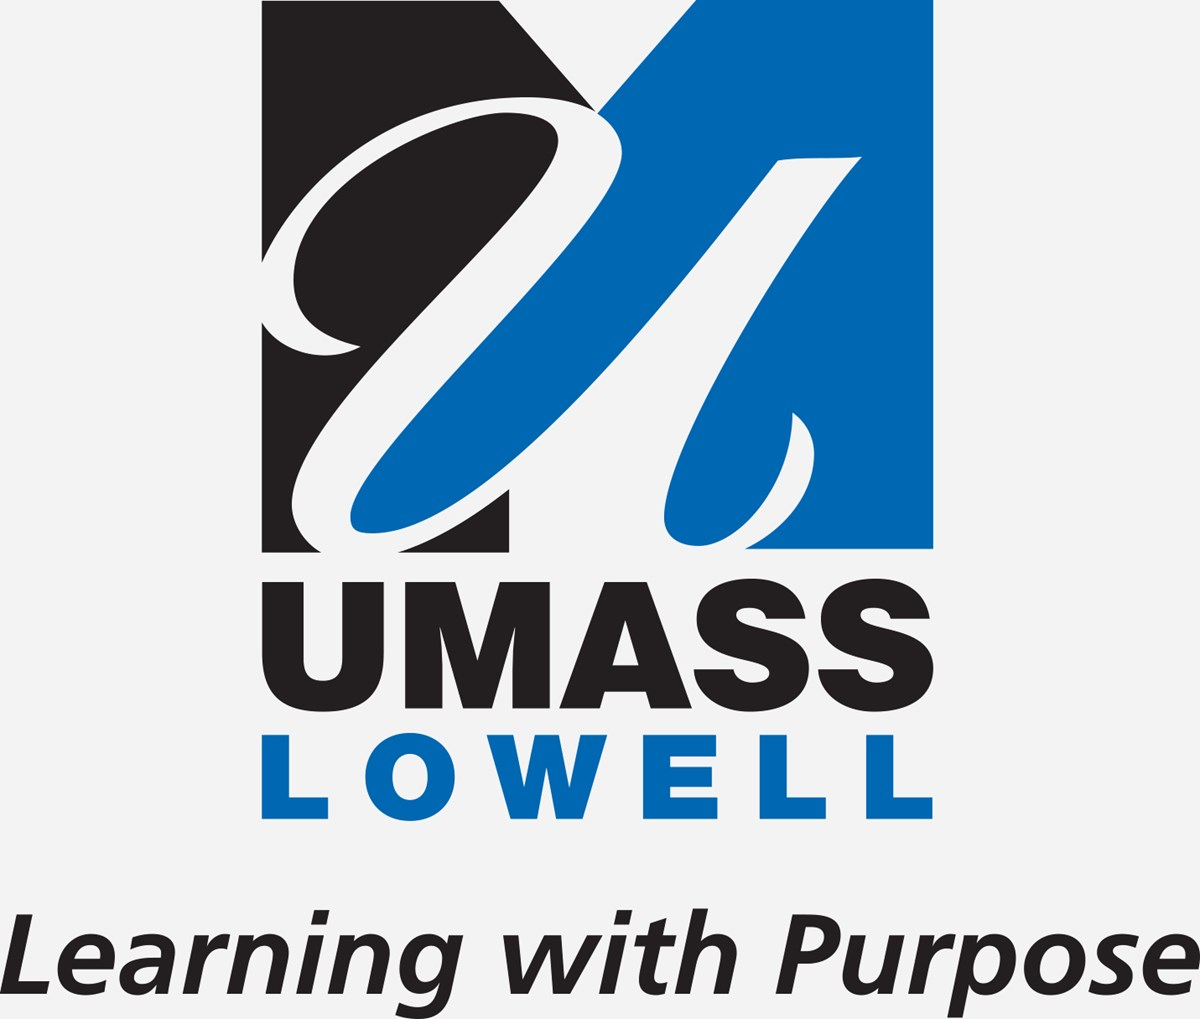 UMass Lowell vertical logo with black tagline